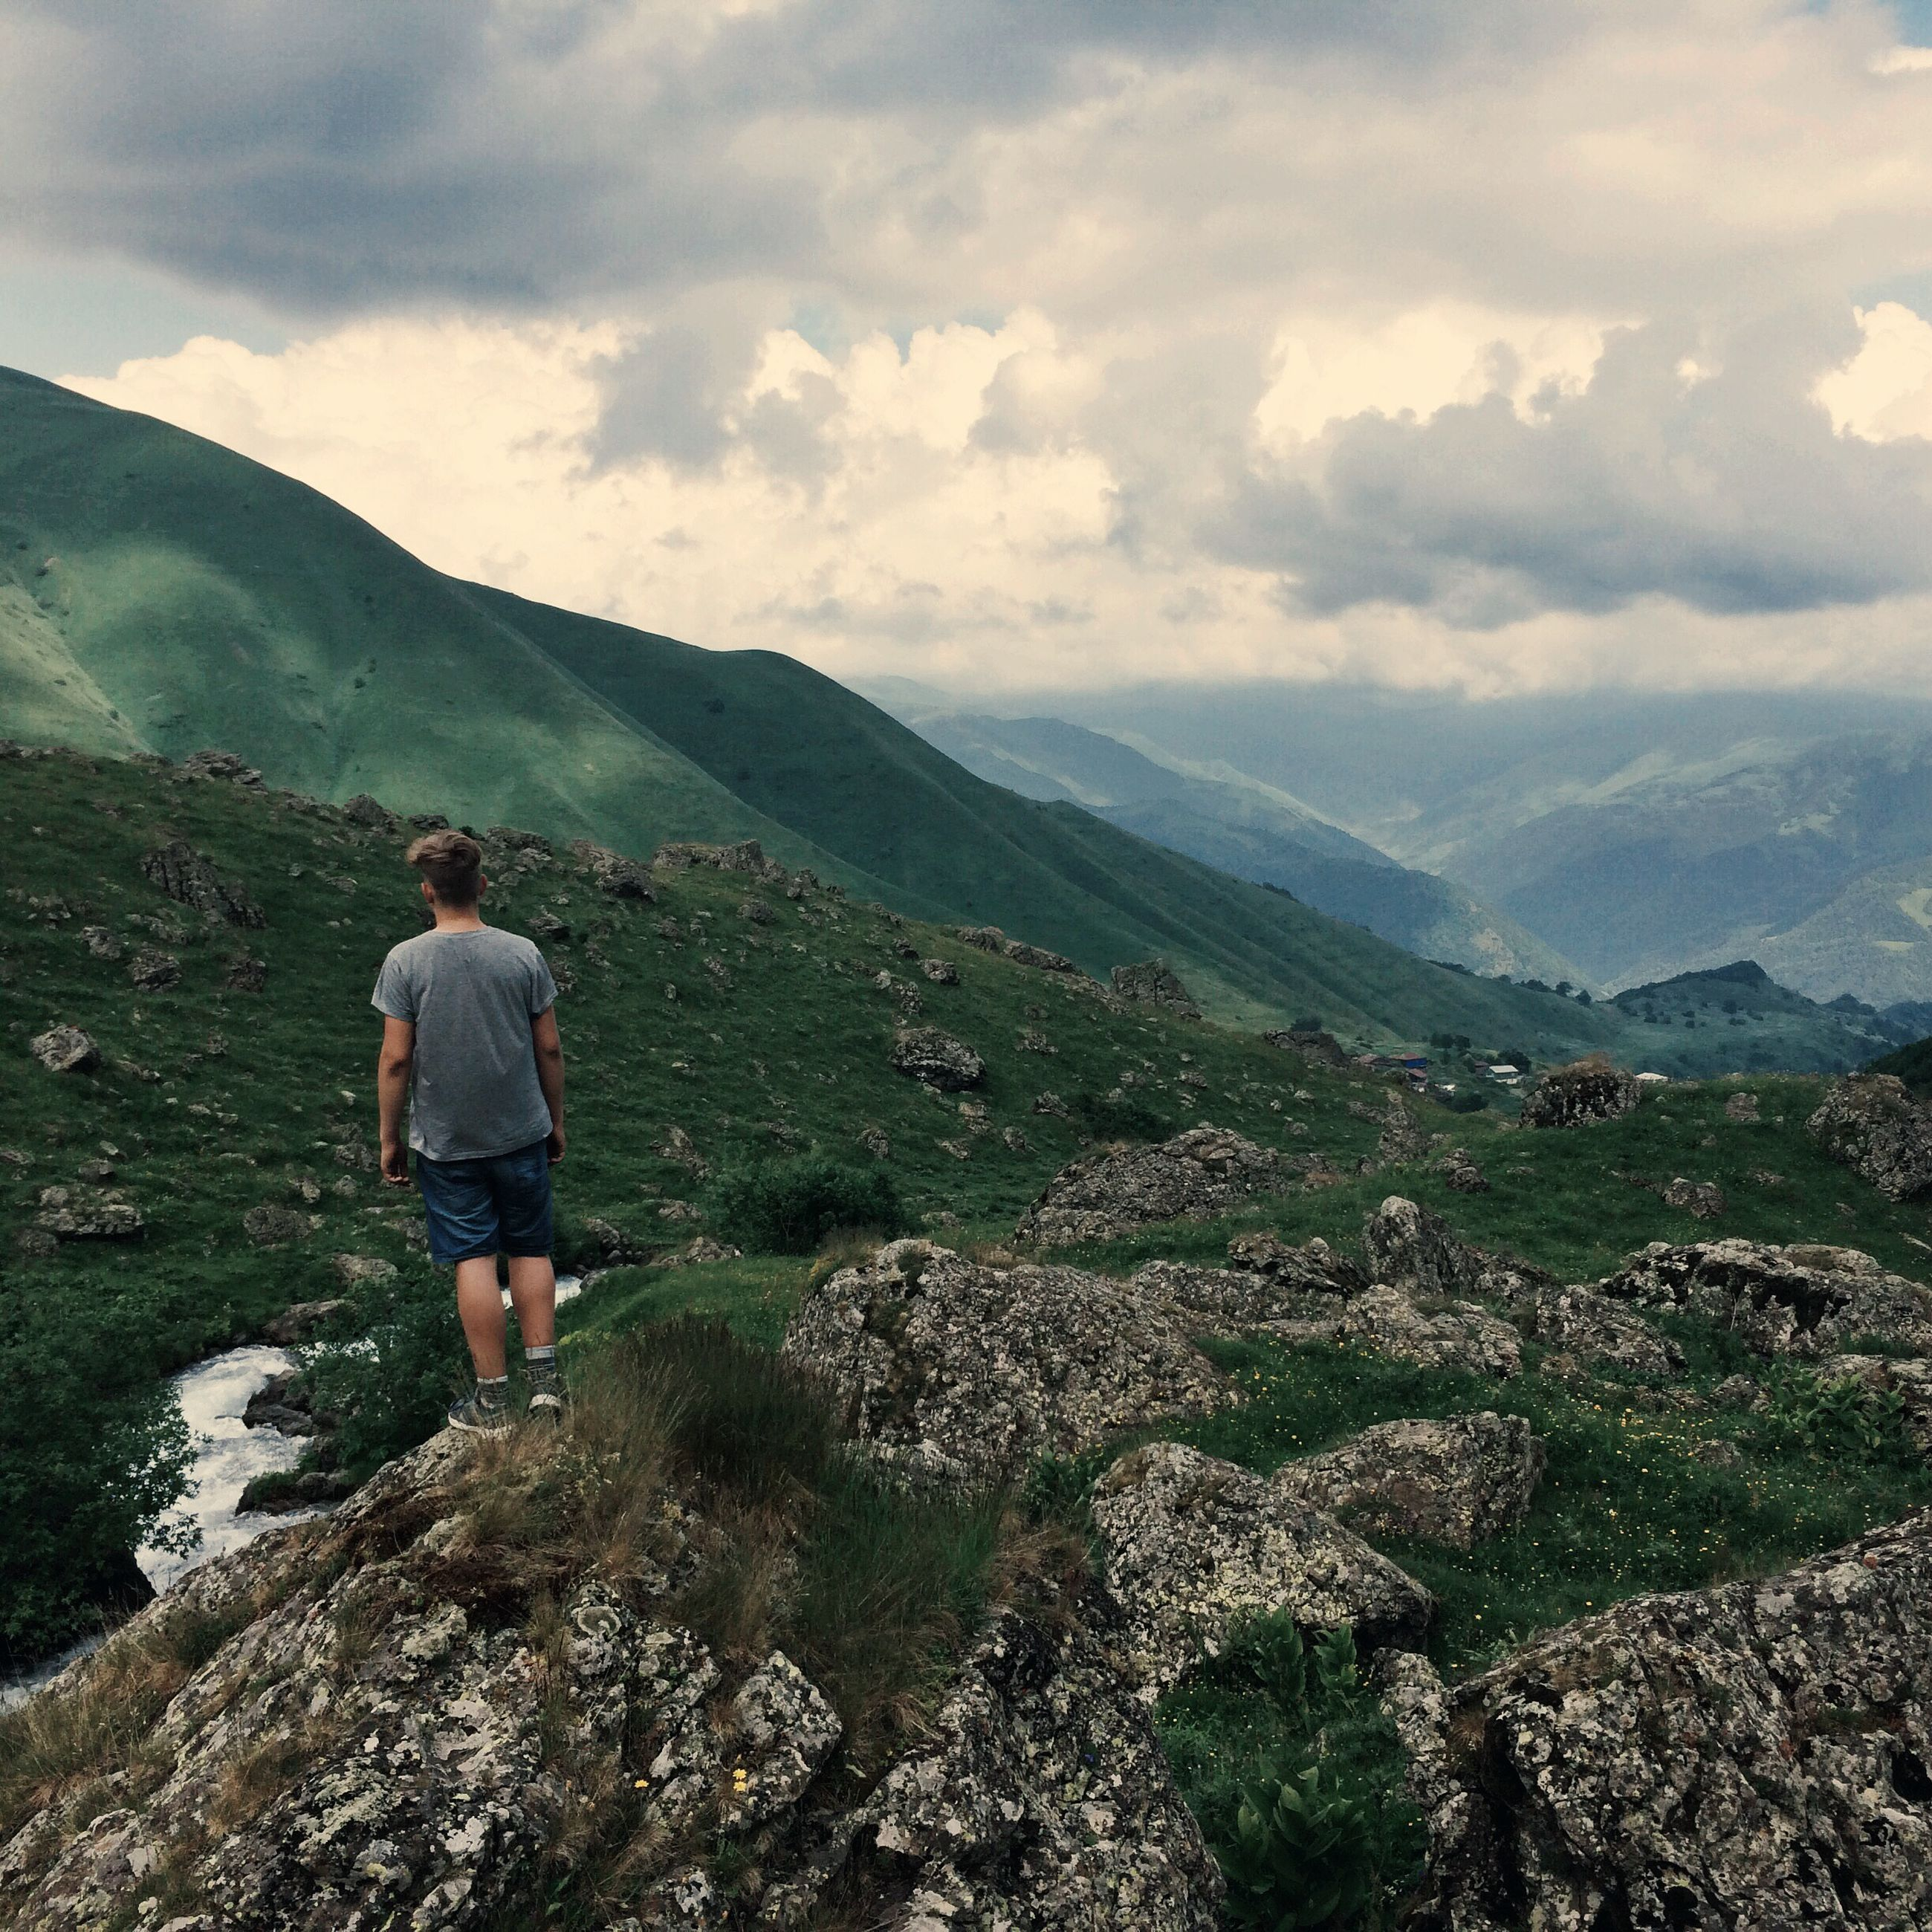 mountain, lifestyles, leisure activity, mountain range, sky, tranquility, tranquil scene, scenics, rear view, full length, beauty in nature, landscape, nature, casual clothing, rock - object, standing, cloud - sky, men